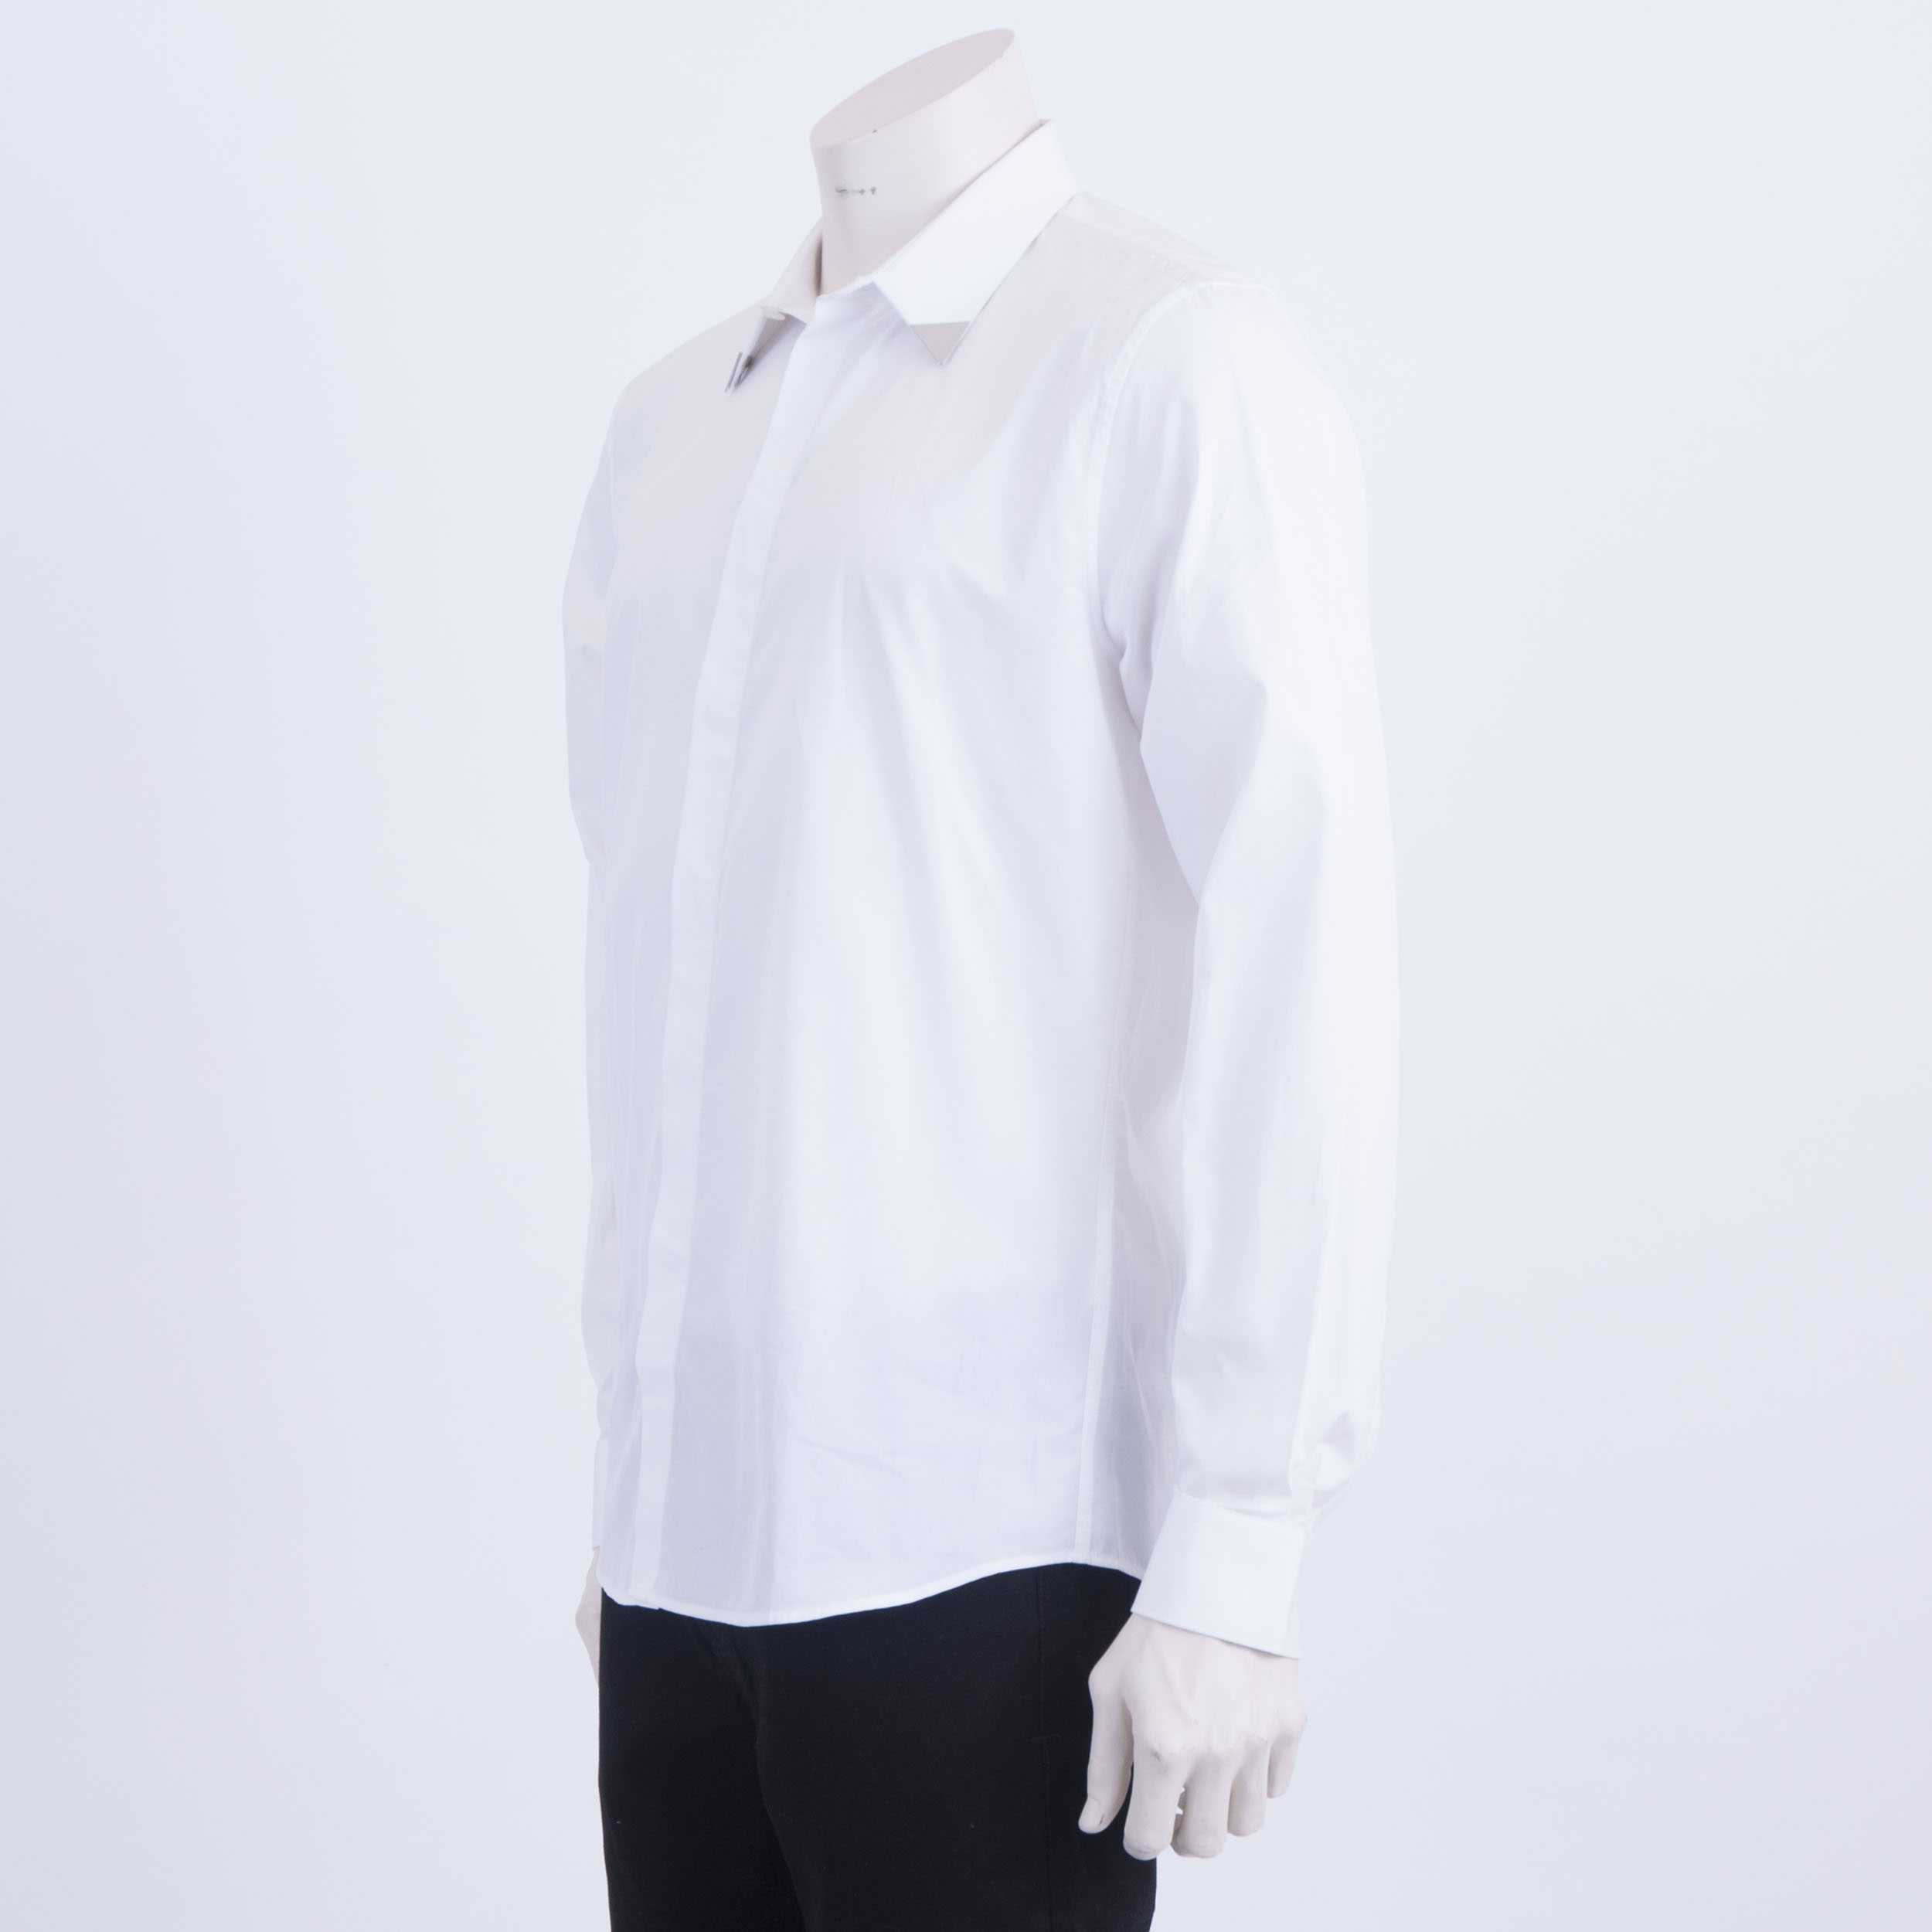 600 Givenchy Authentic White Cotton Dress Shirt With Metallic